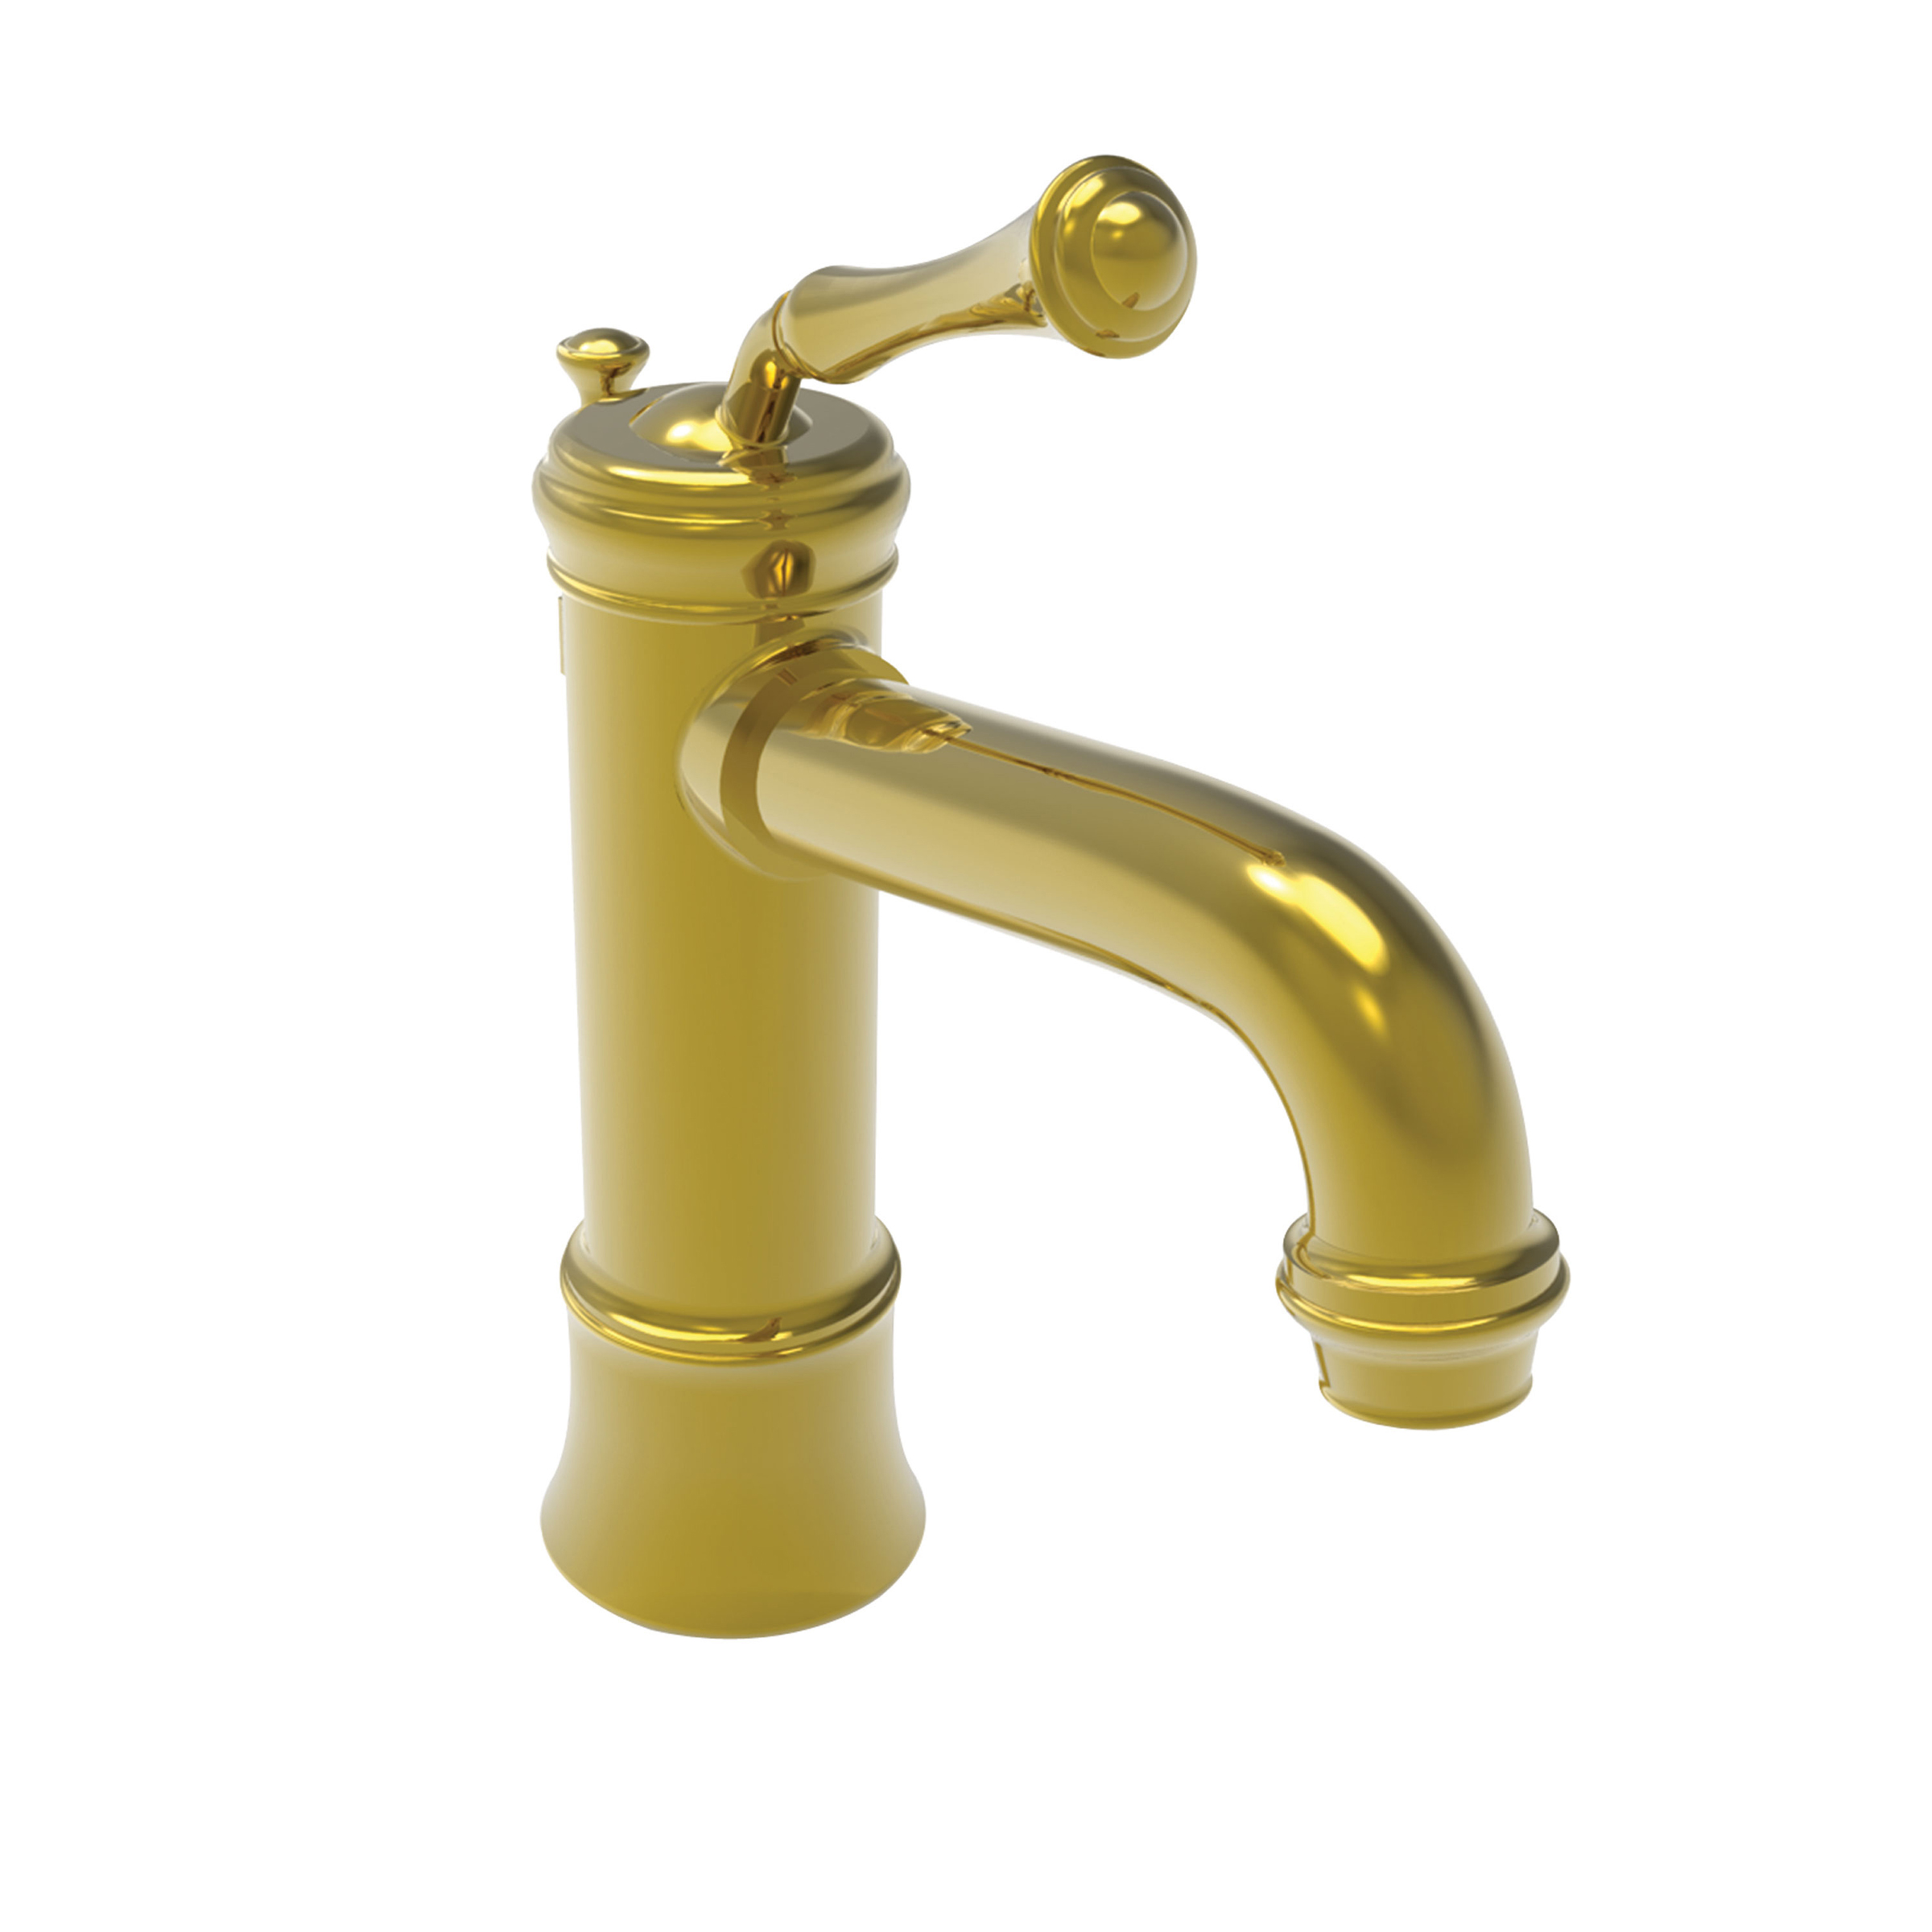 Newport brass 9203 single hole lavatory faucet newport brass faucets Newport brass bathroom faucets